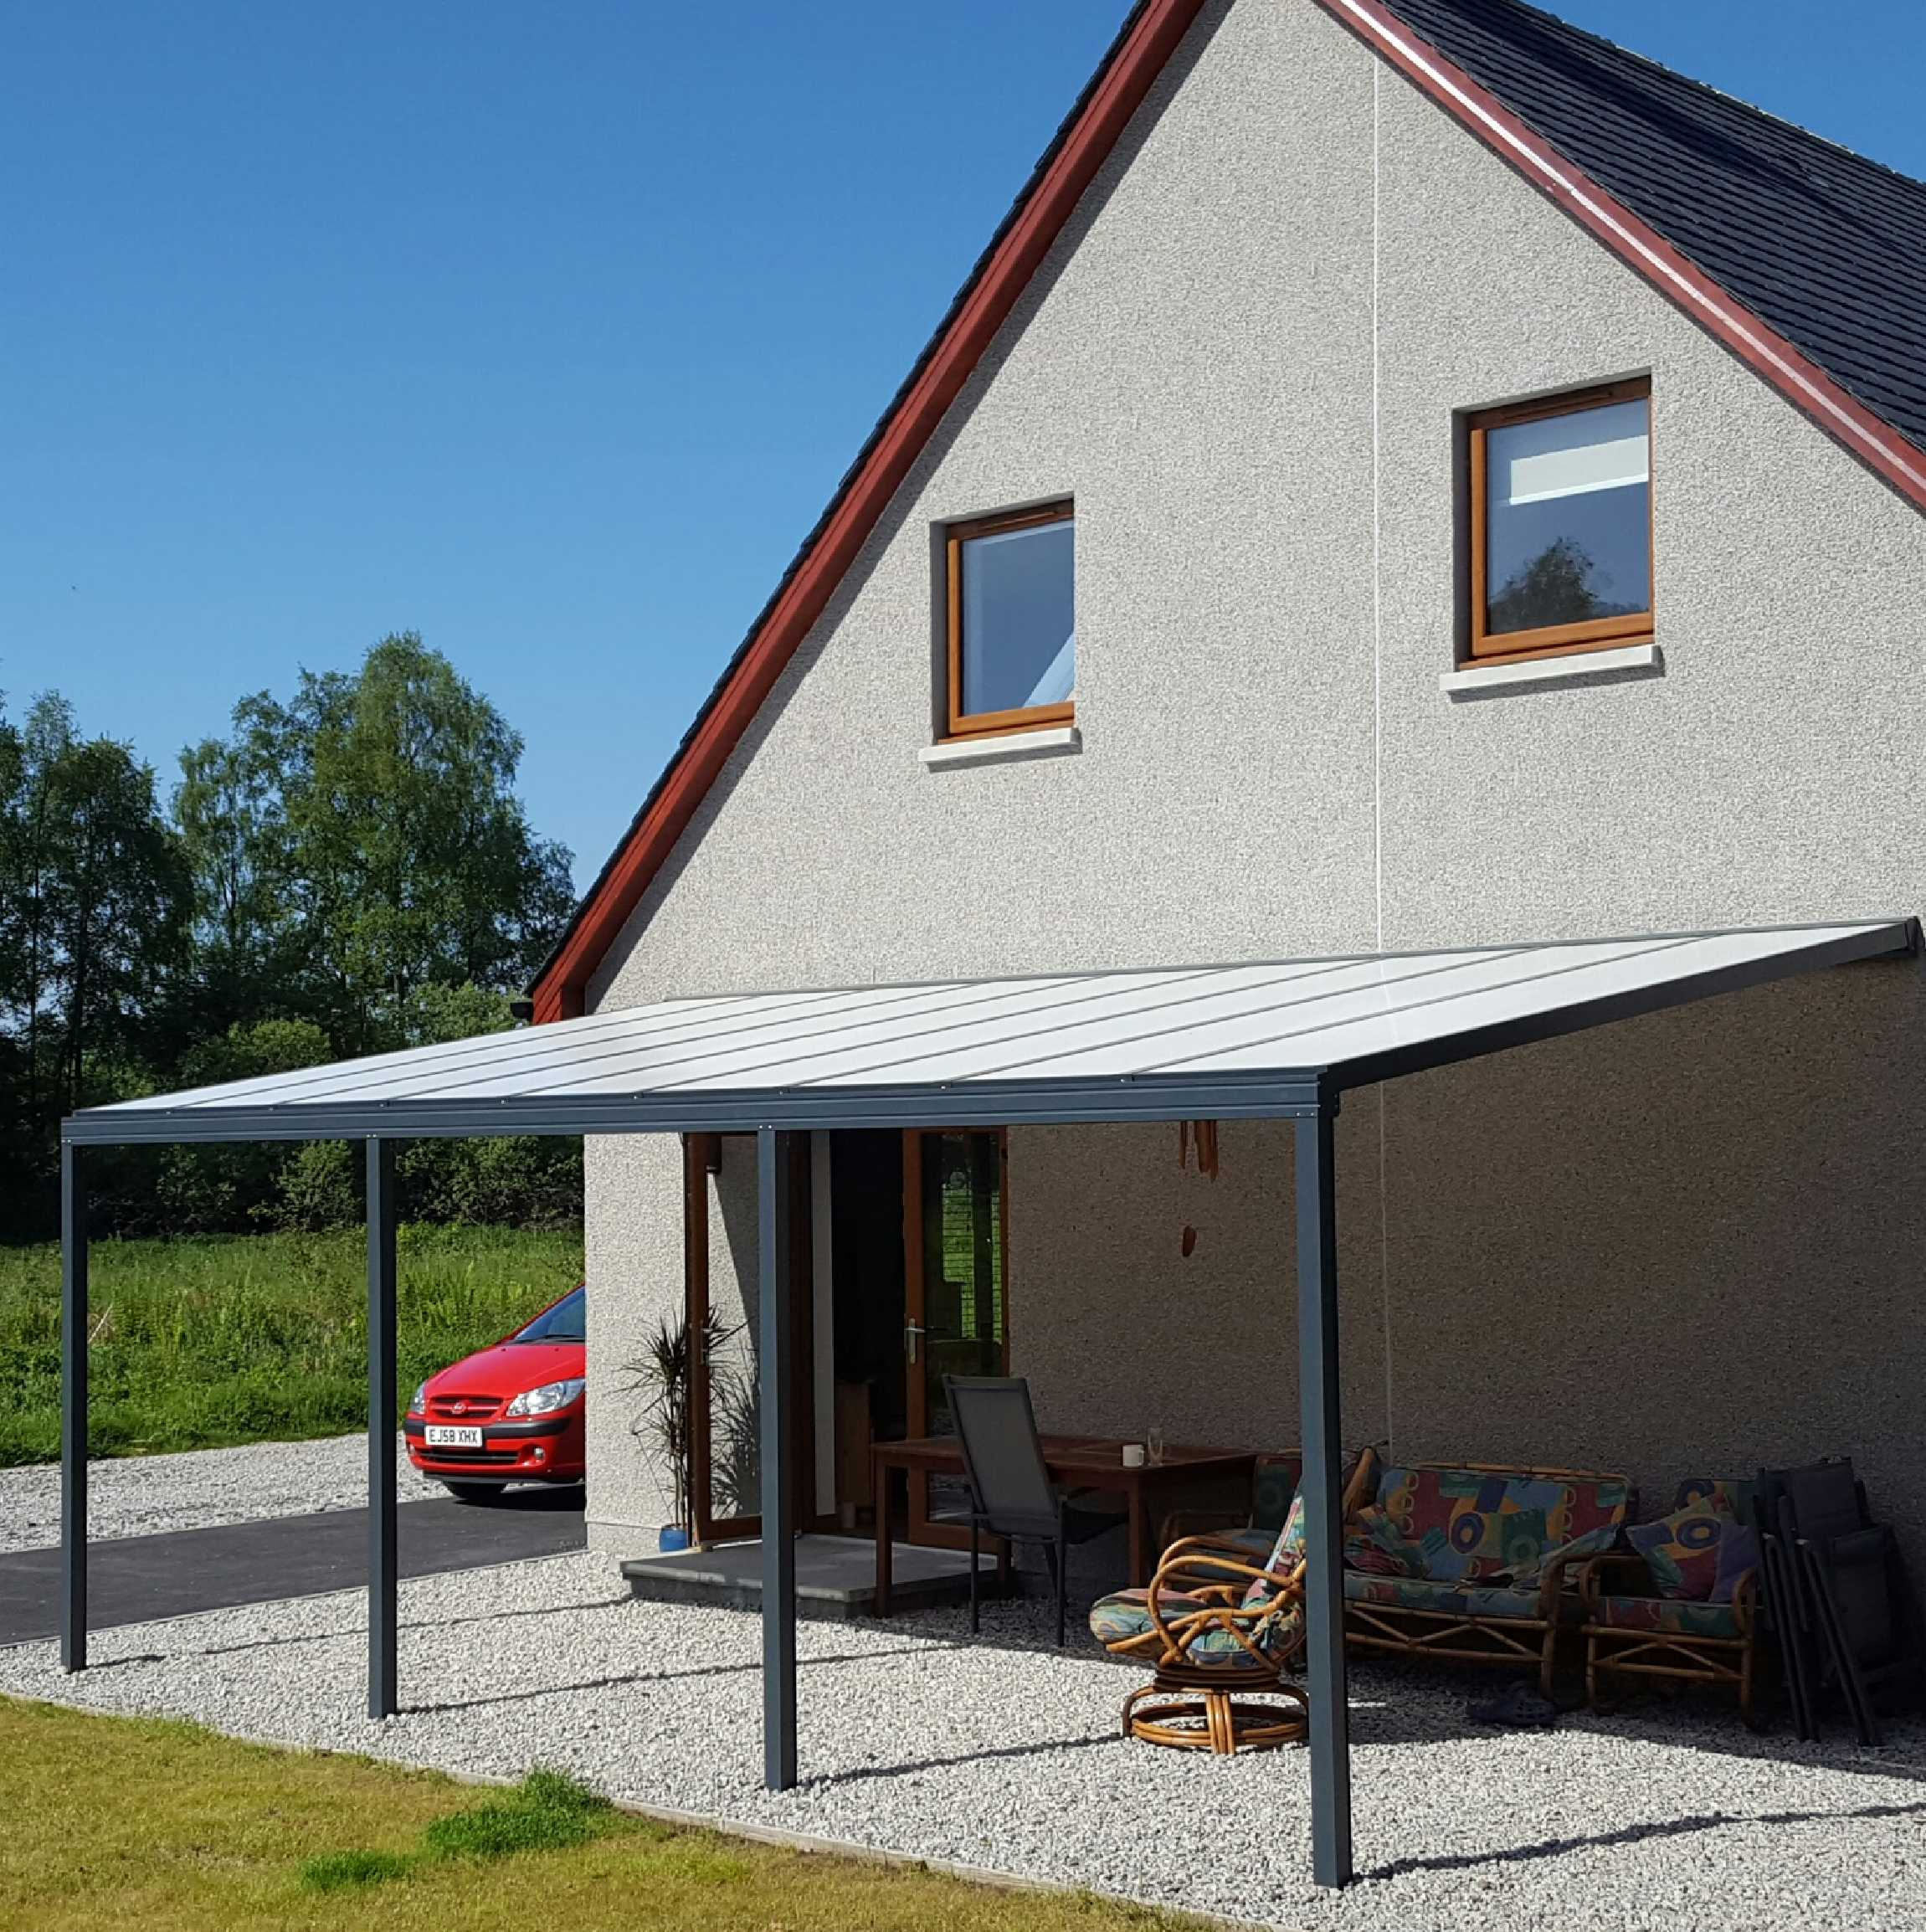 Great selection of Omega Smart Lean-To Canopy, Anthracite Grey, 16mm Polycarbonate Glazing - 8.4m (W) x 4.0m (P), (4) Supporting Posts